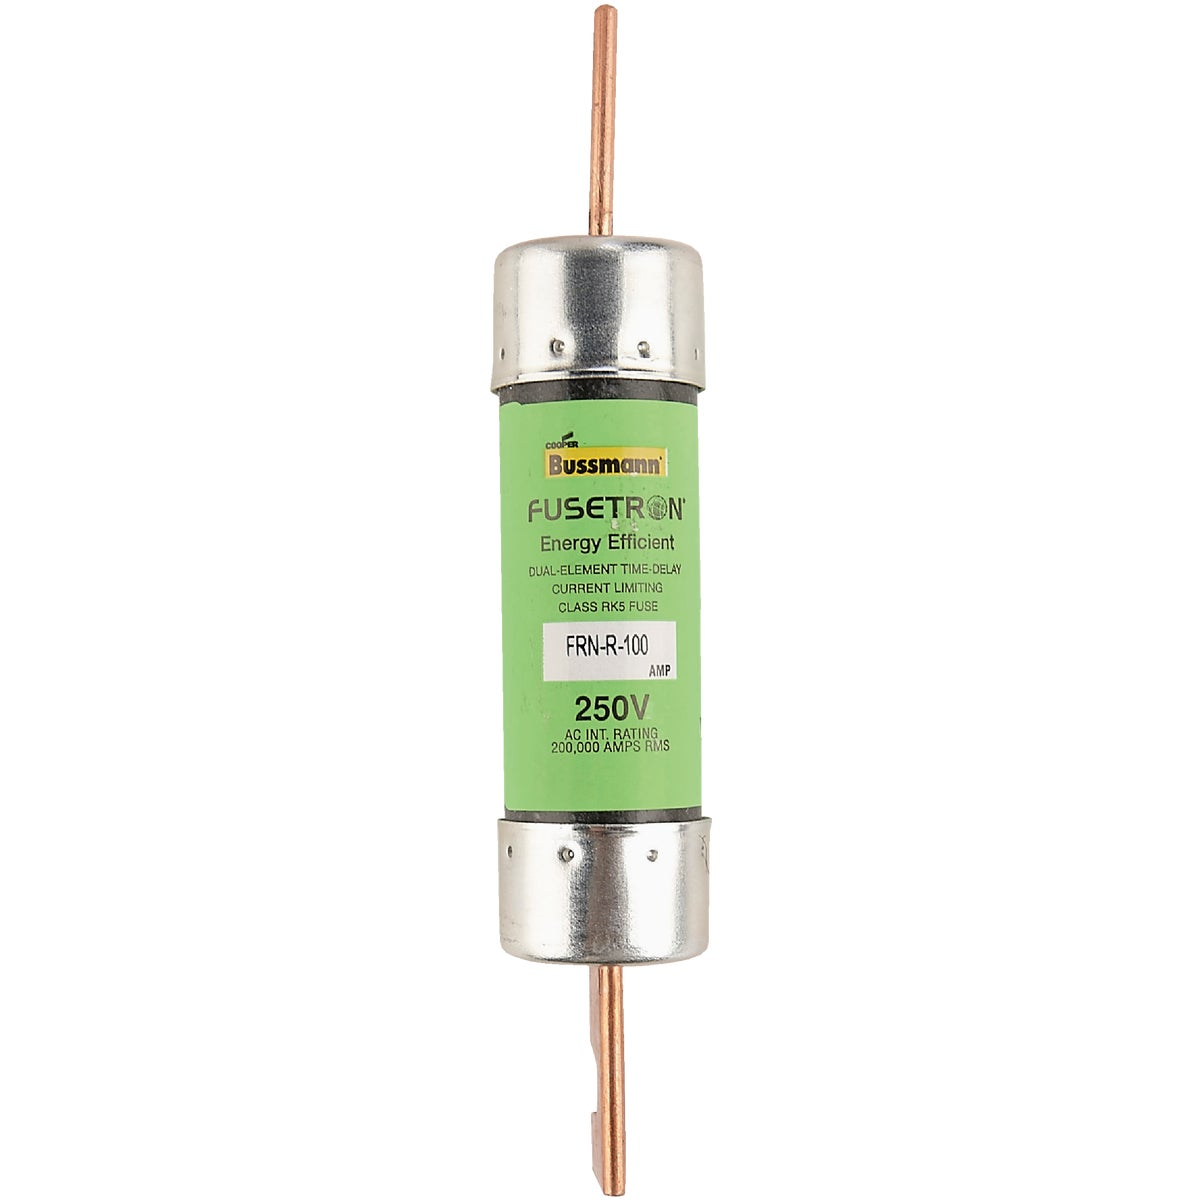 100A TD CARTRIDGE FUSE - FRN-R-100 by Bussmann Cooper